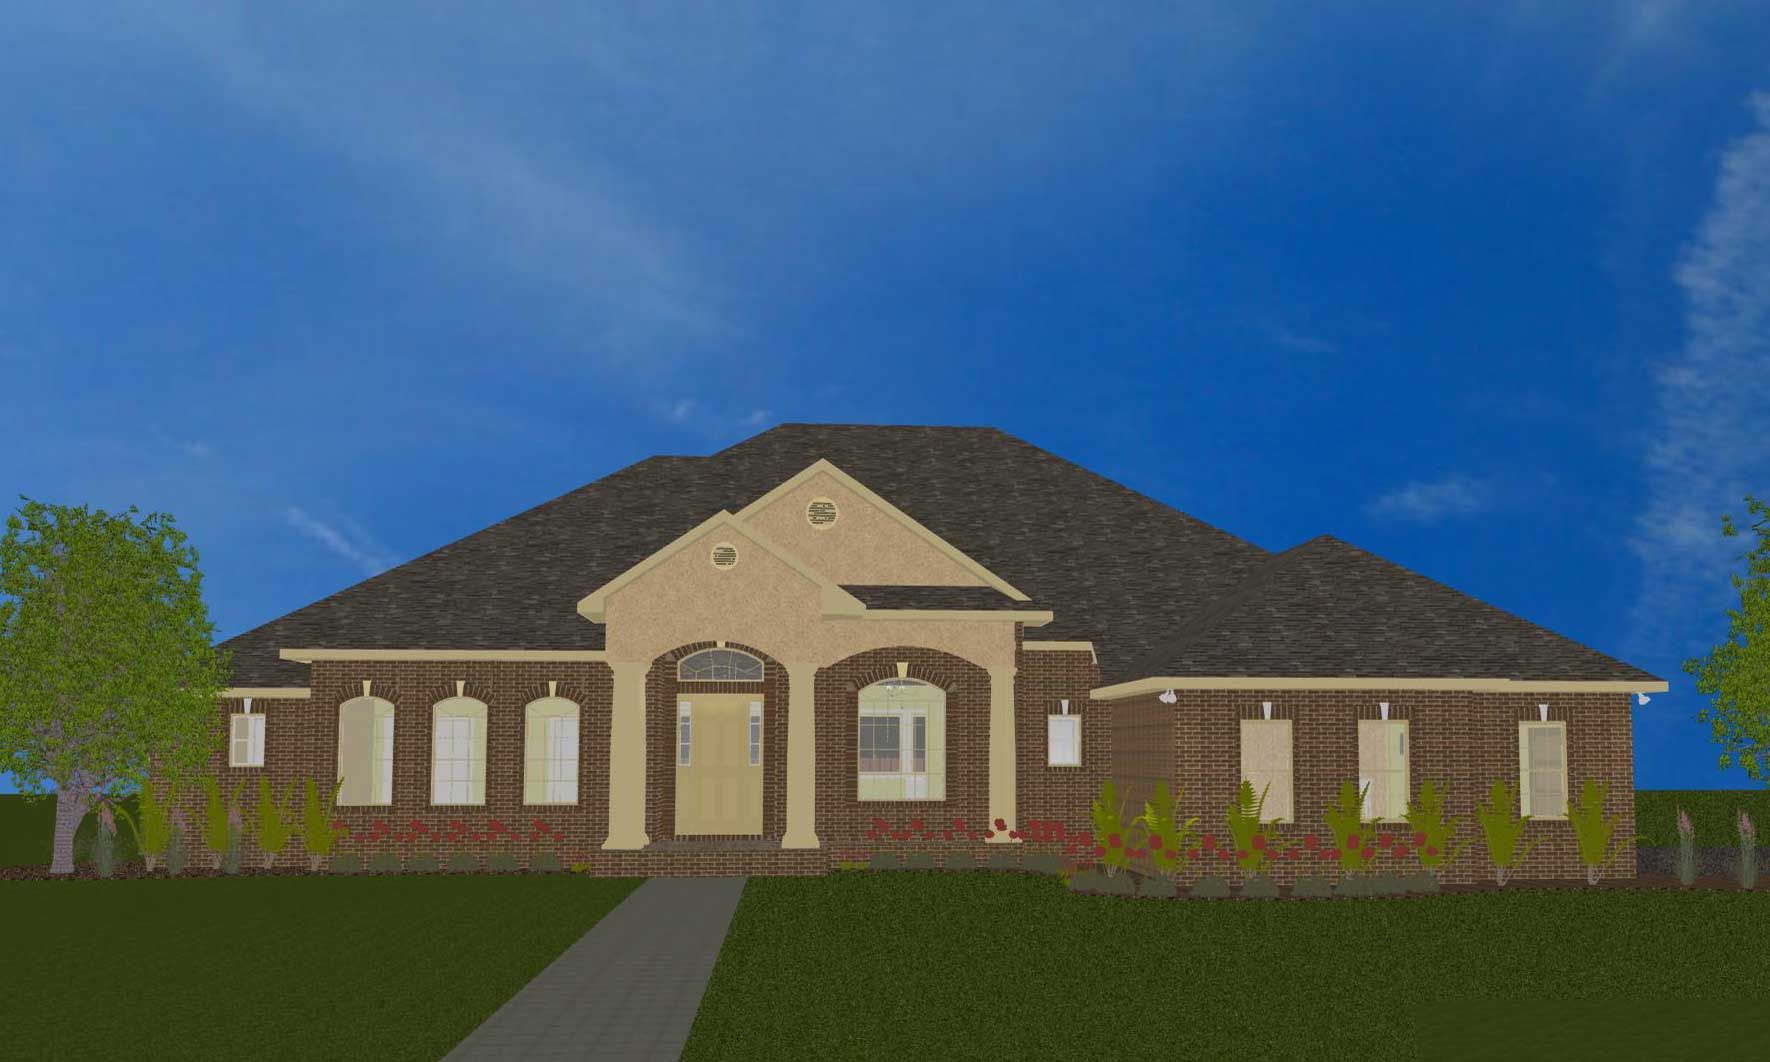 Black job front elevation CAD model